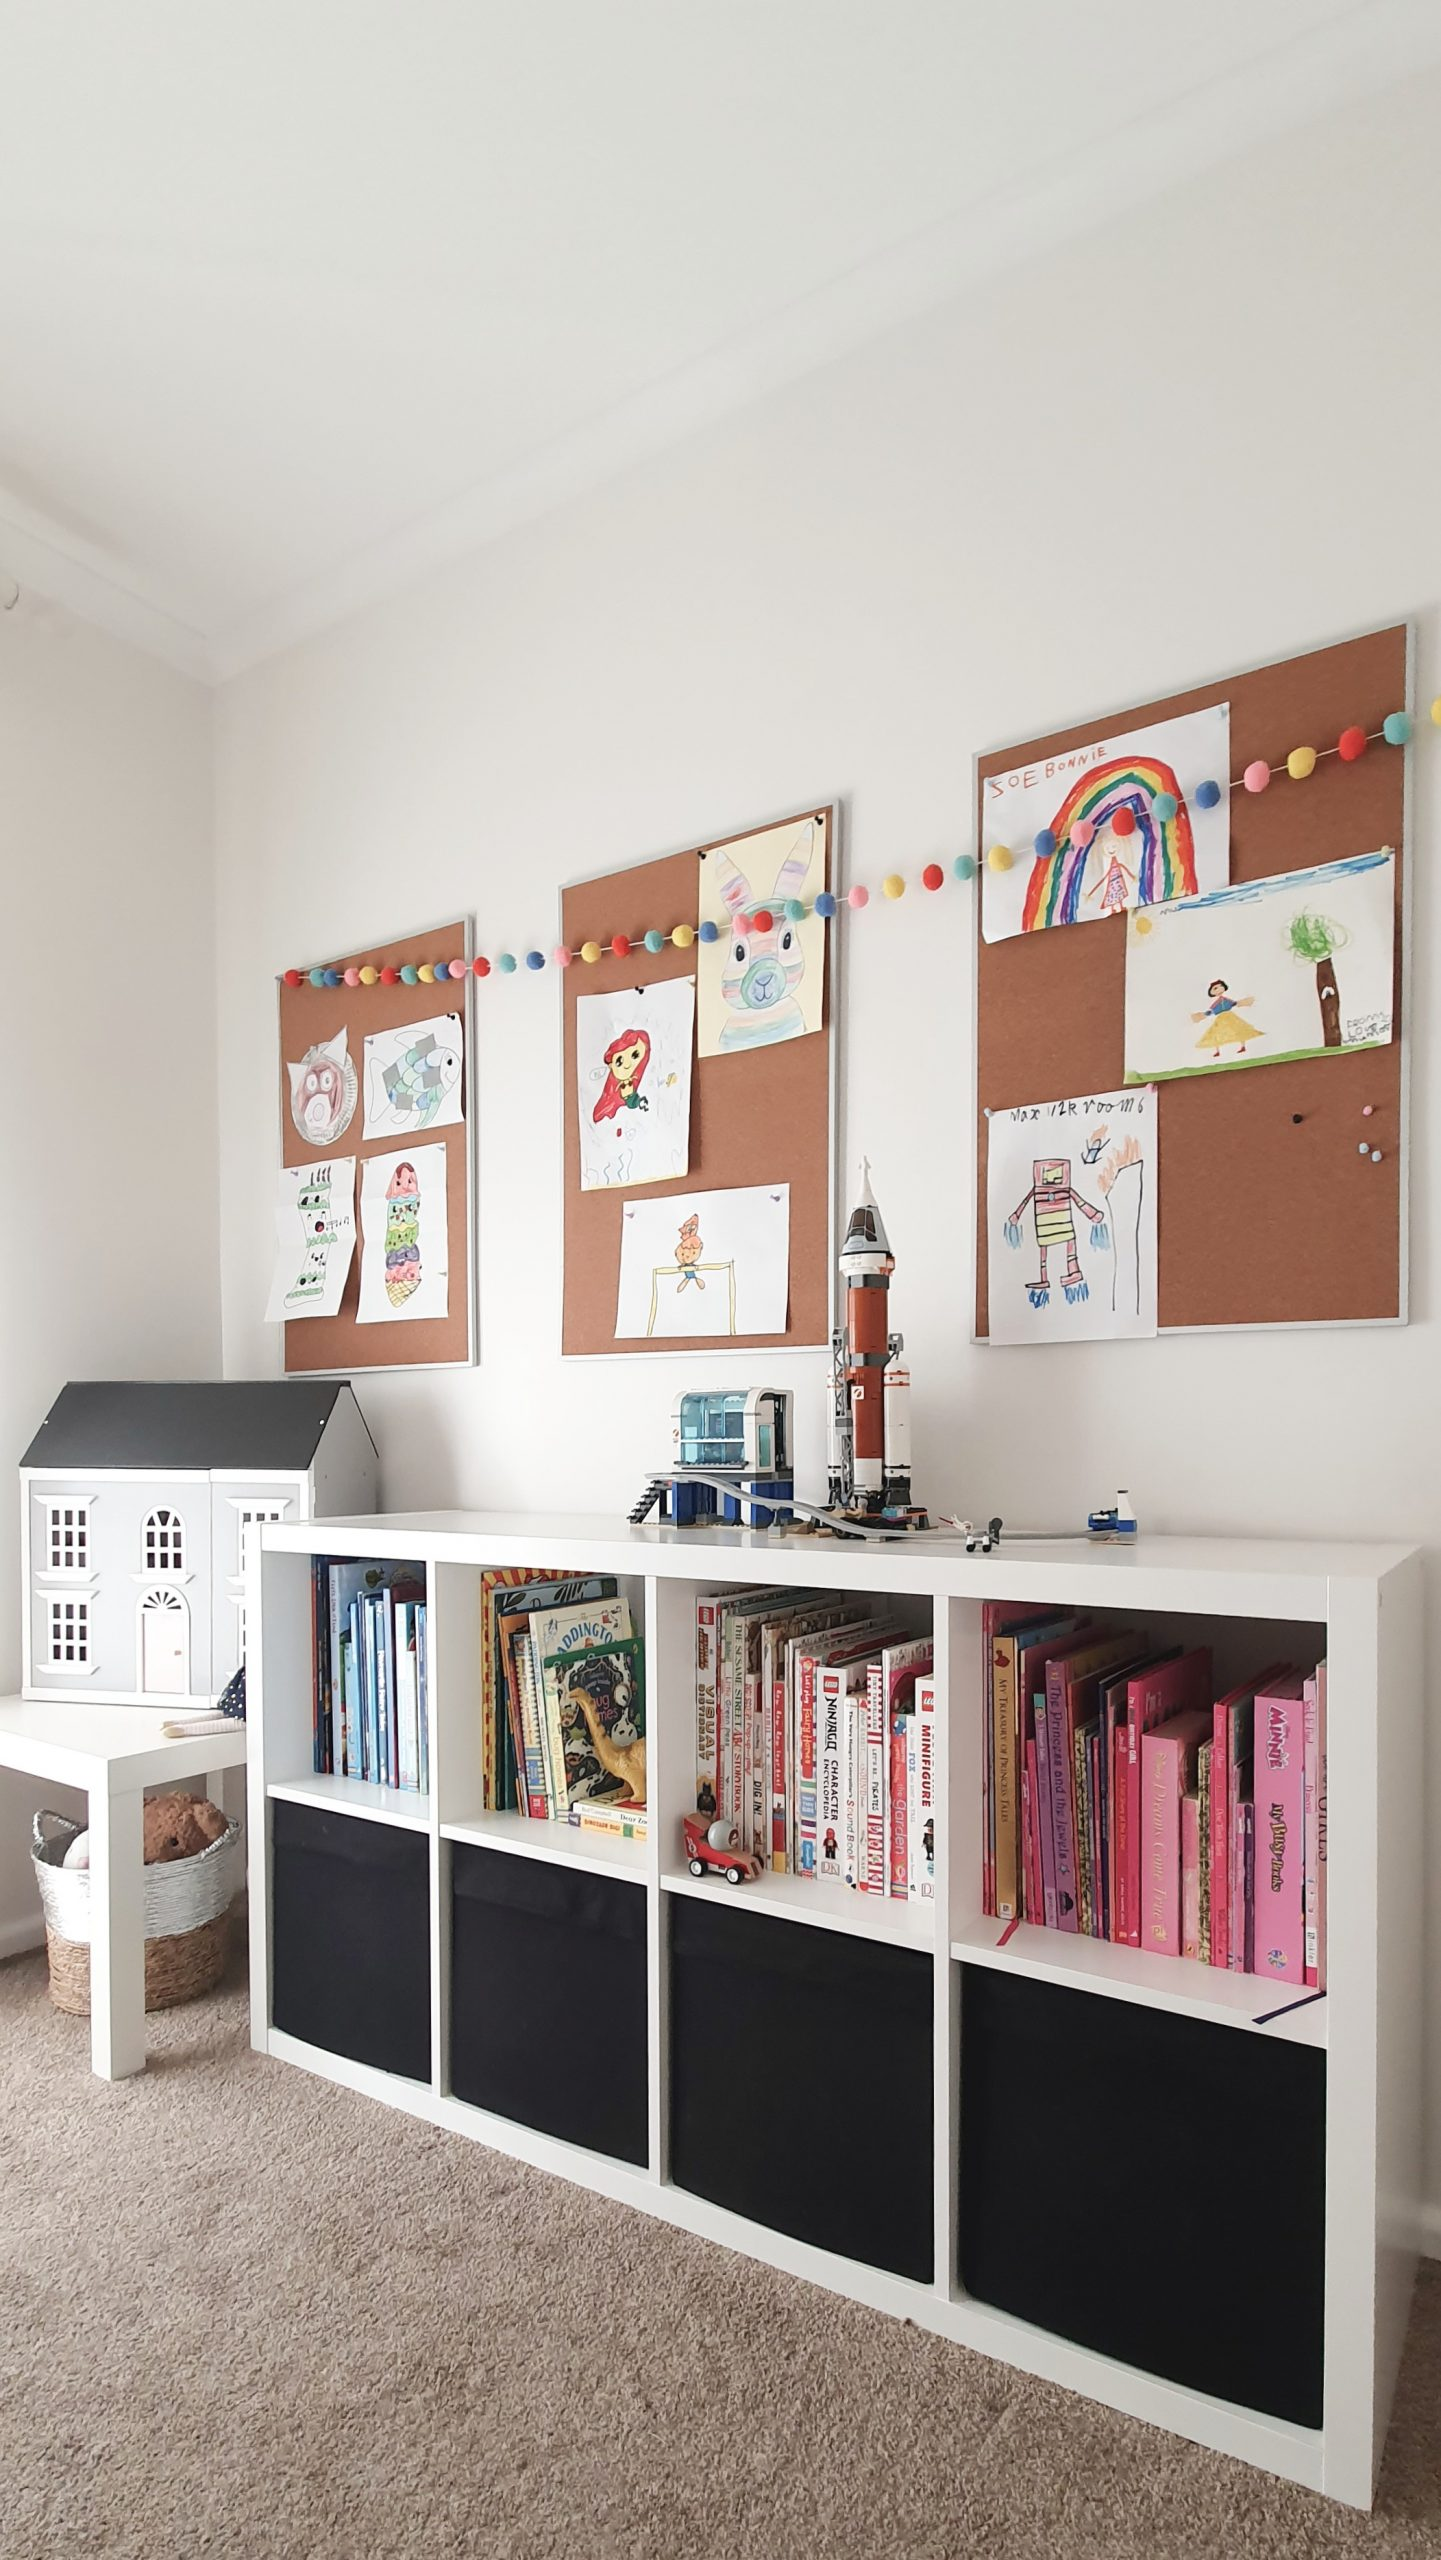 Our Little Playroom  -  Kallax cube shelving toy storage. Kid's artwork display and wooden doll house.